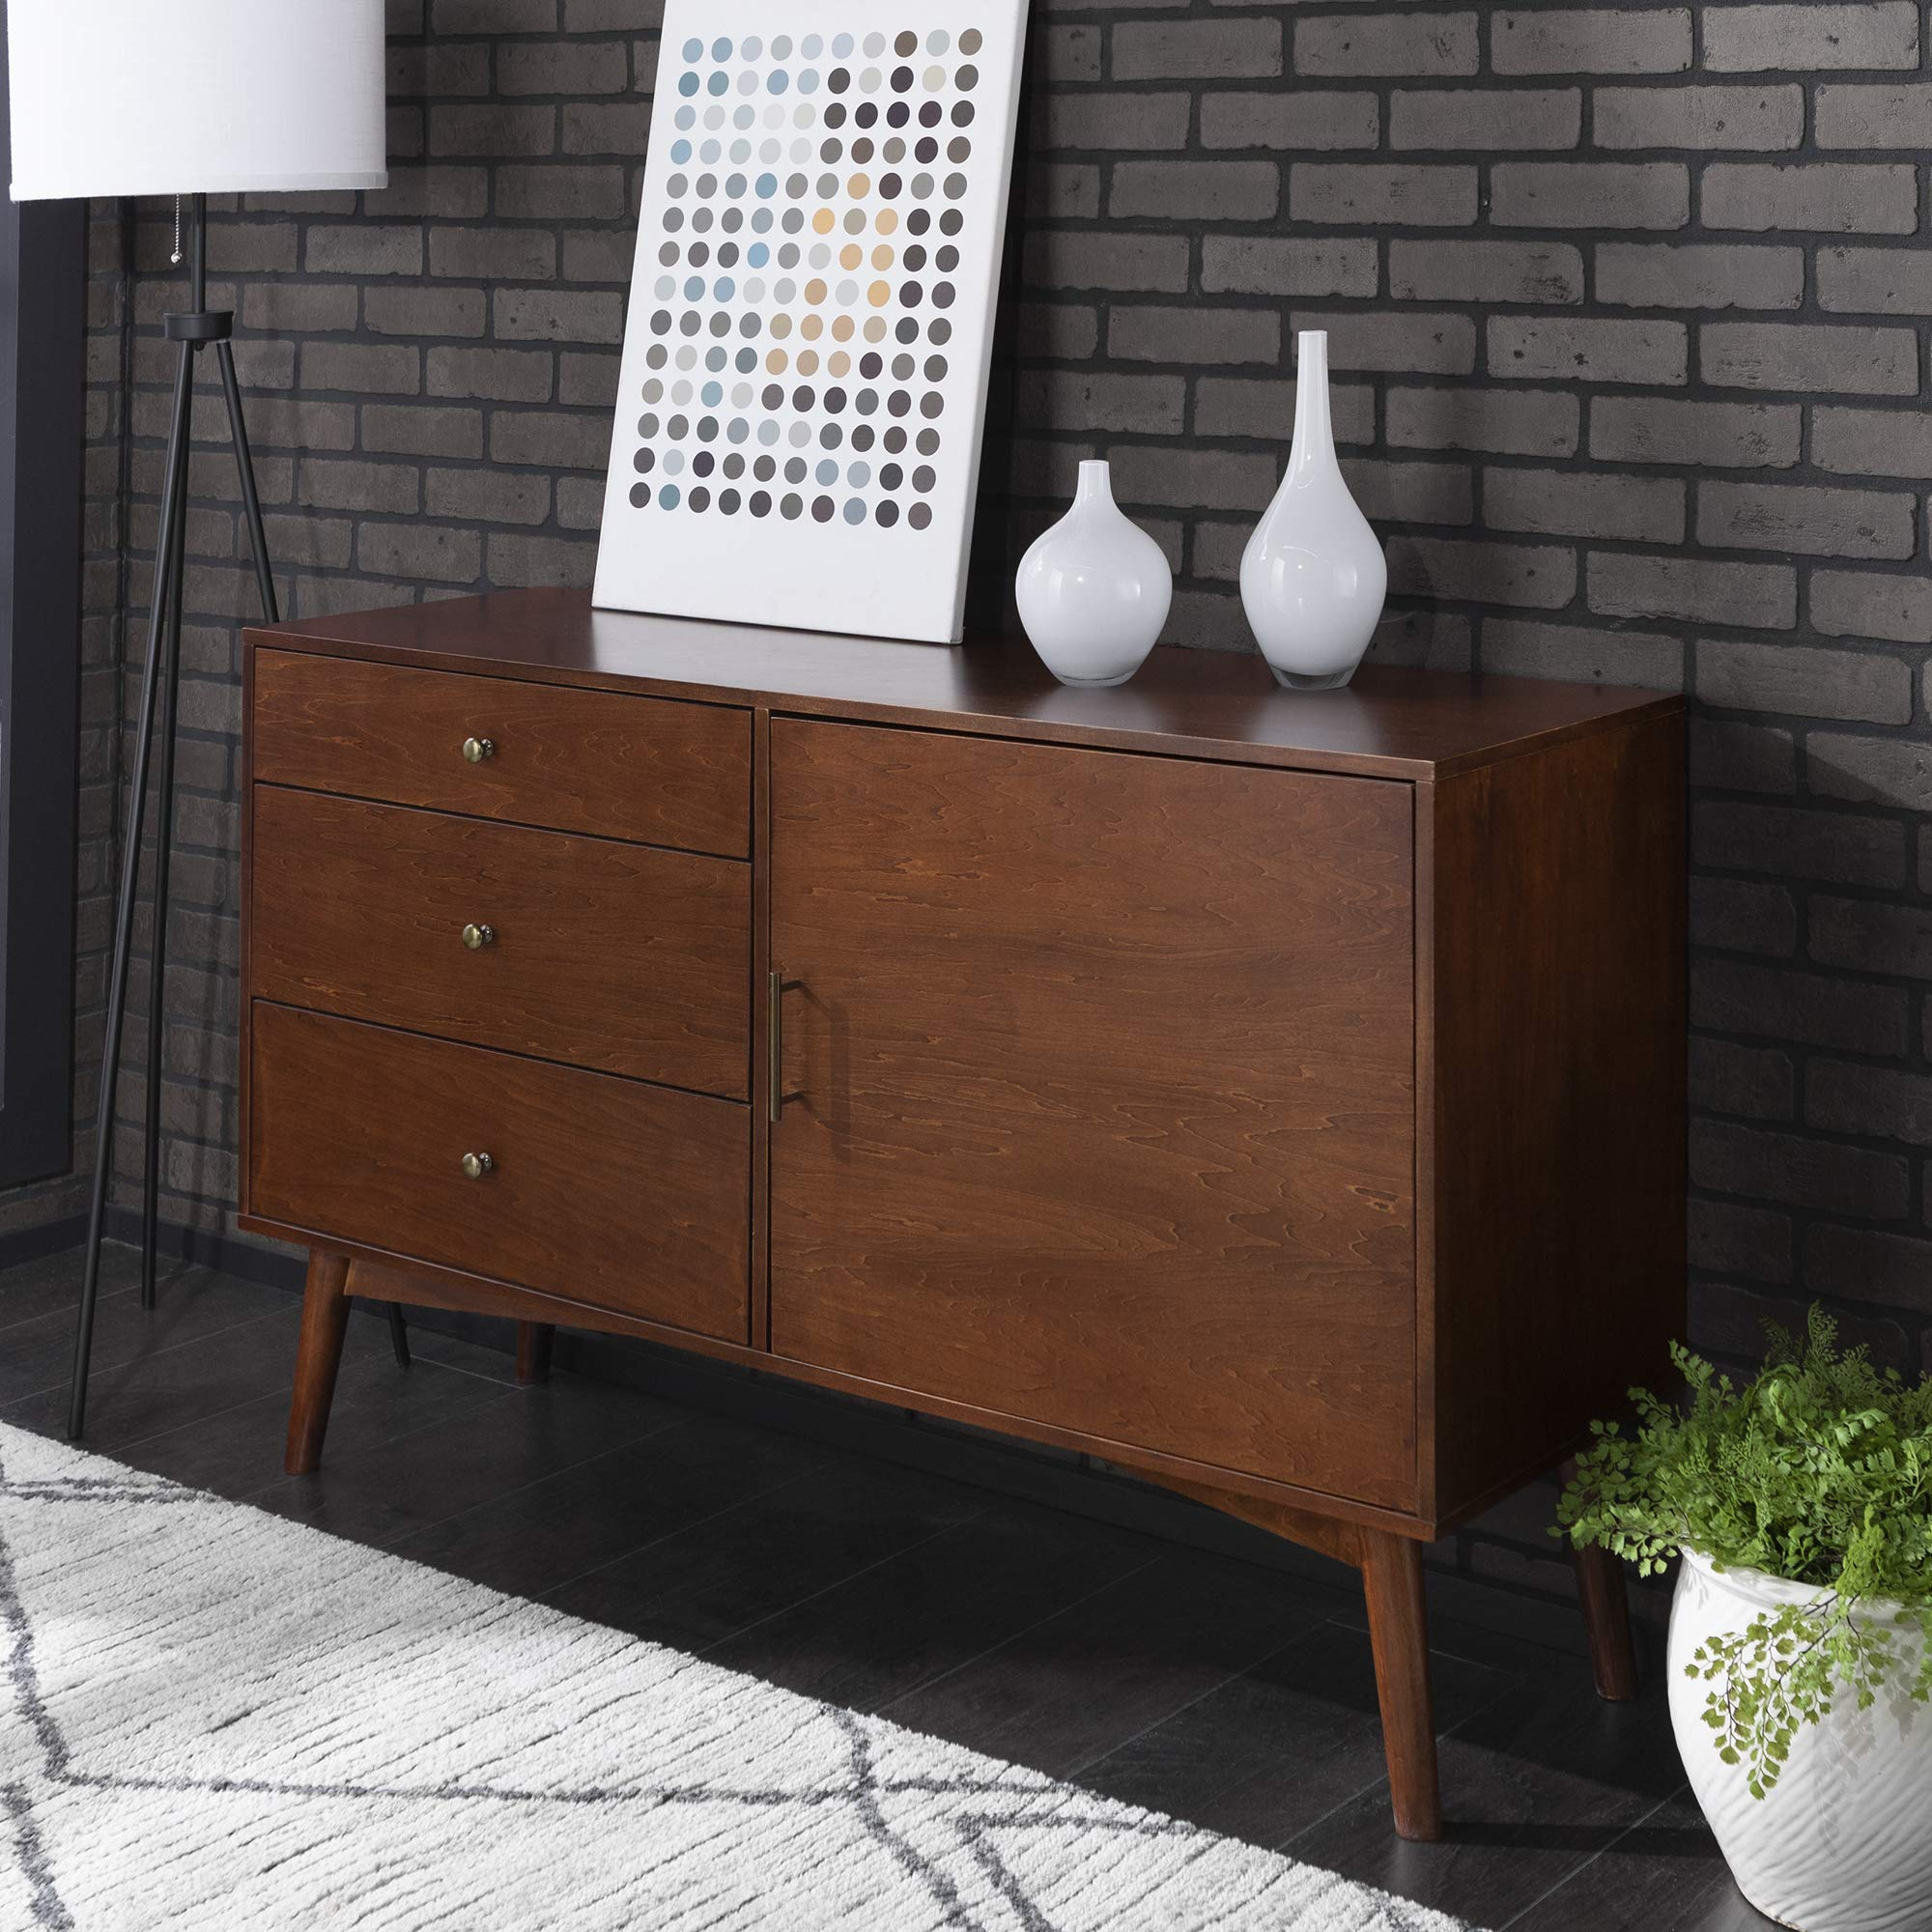 New Mid Century Modern Television Console-Walnut Finish by Home Accent Furnishings